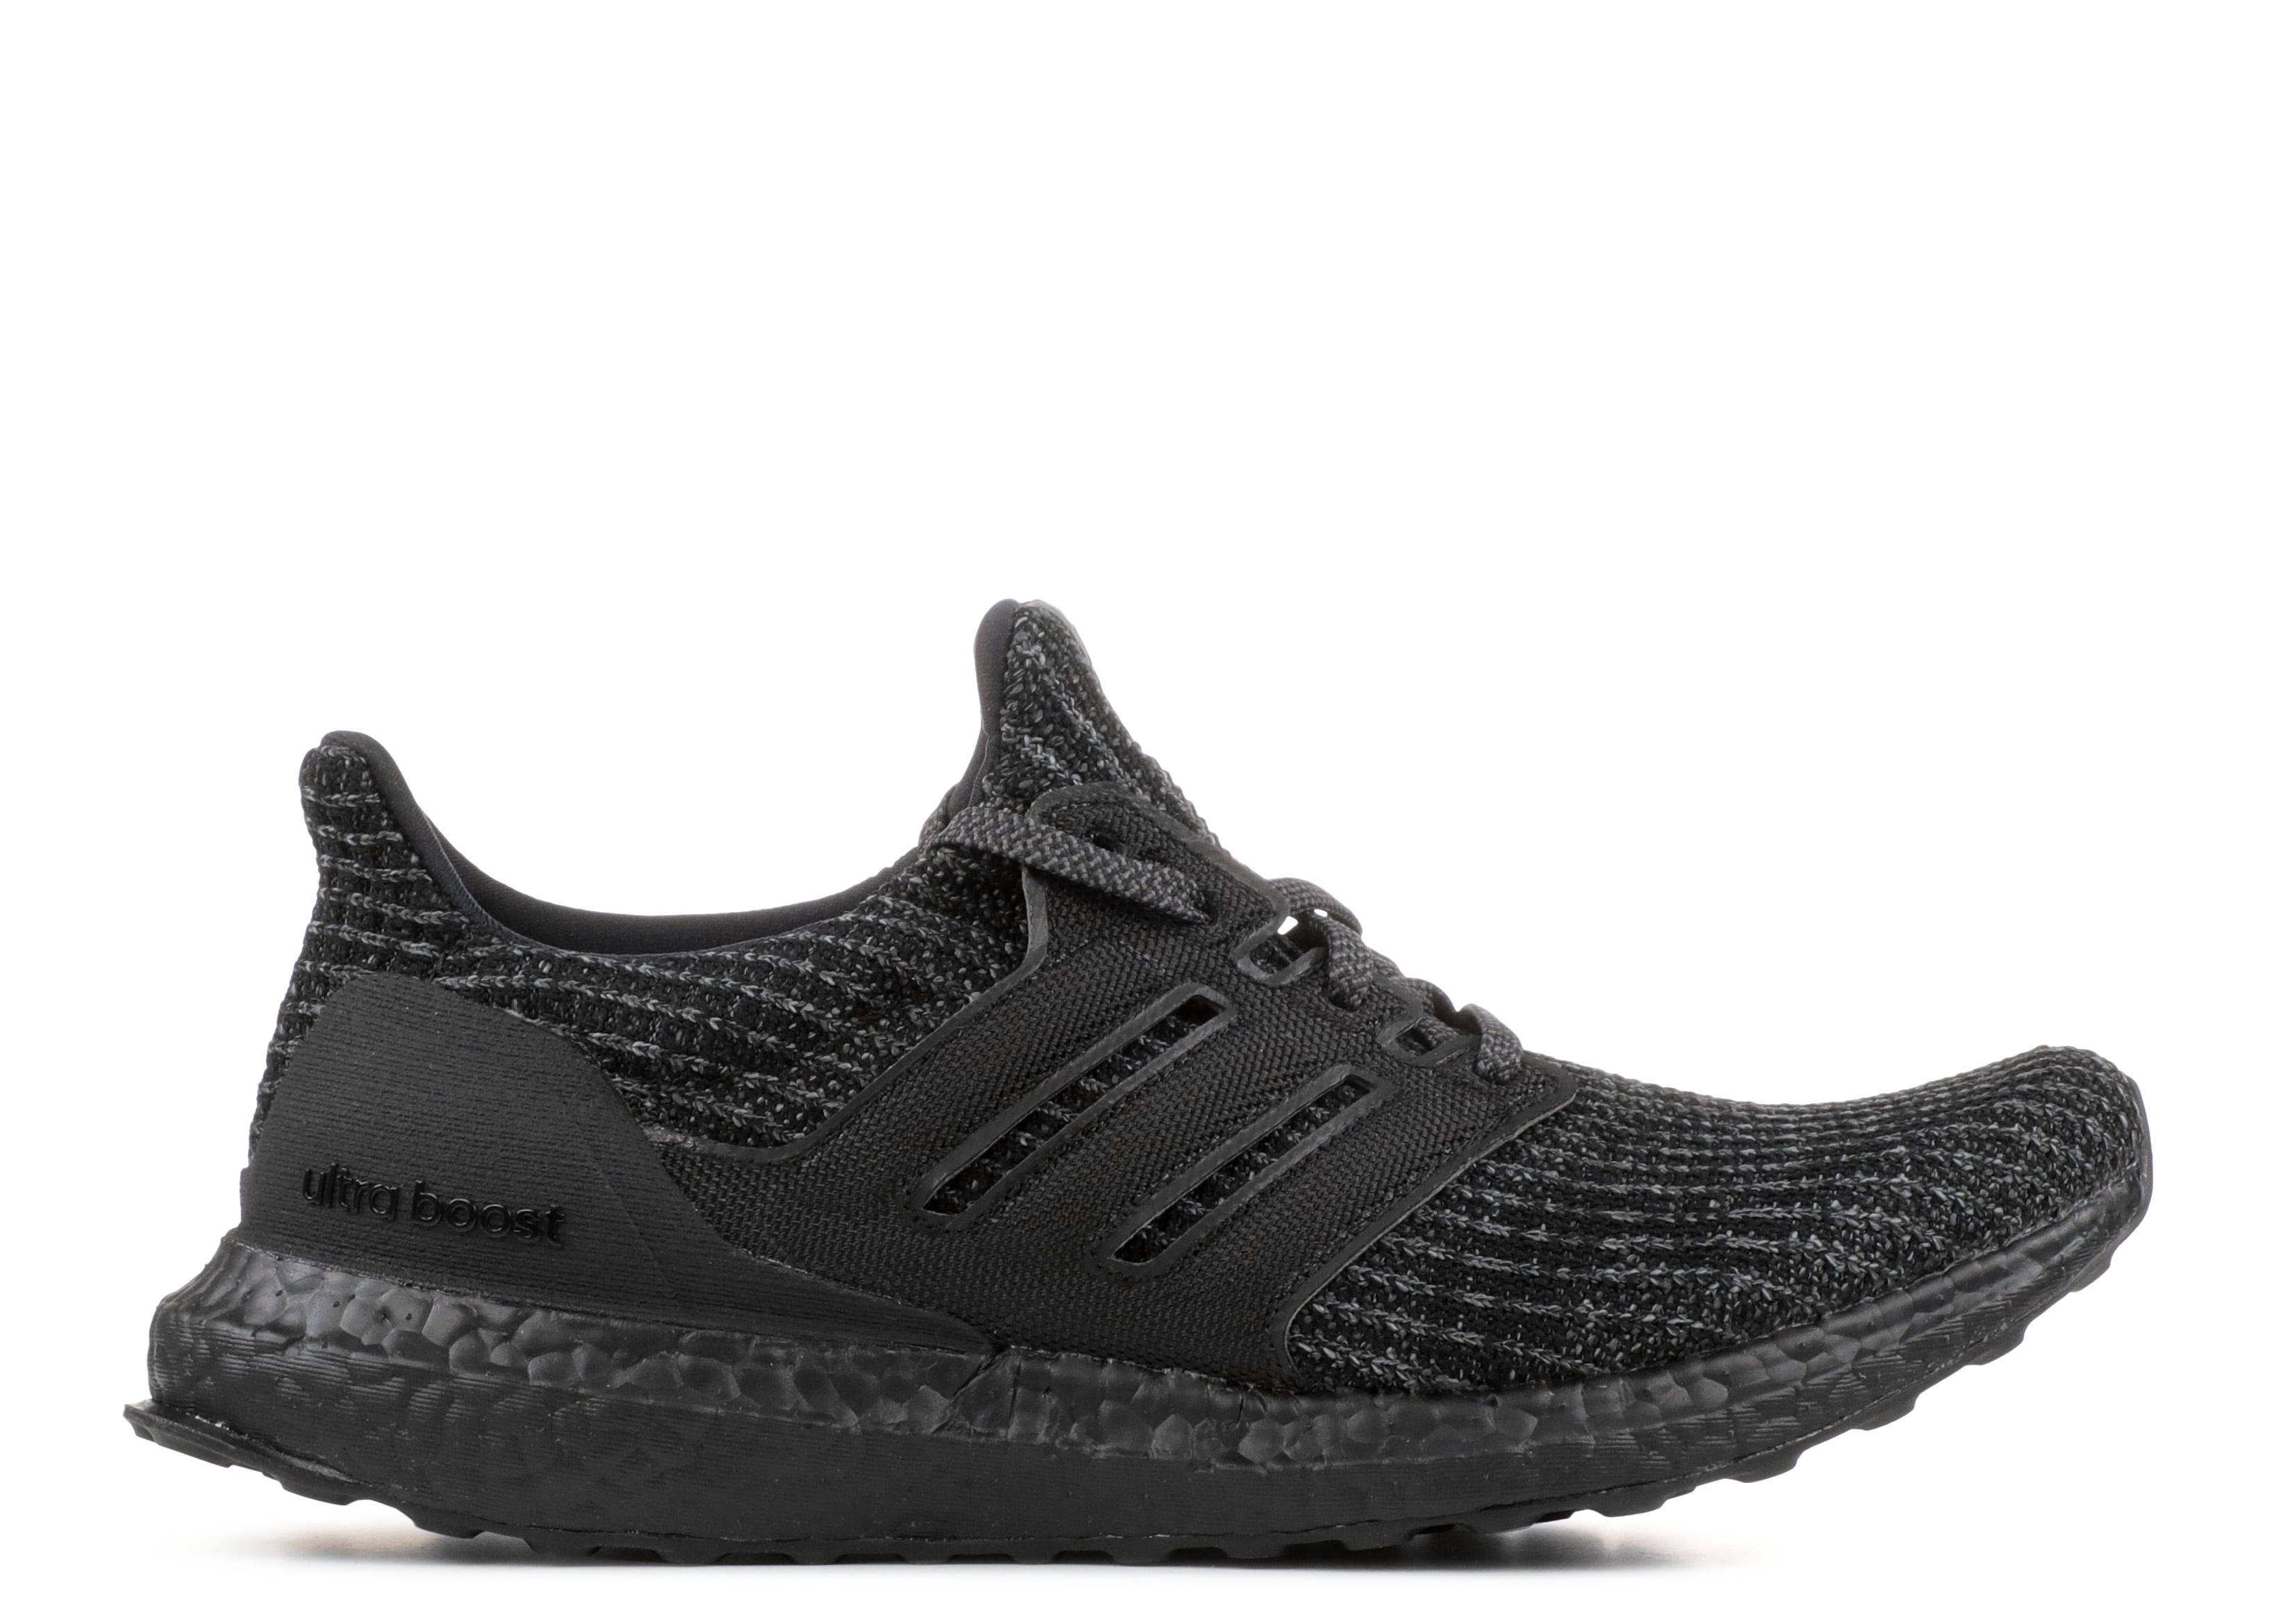 ultraboost 4.0 'triple black'